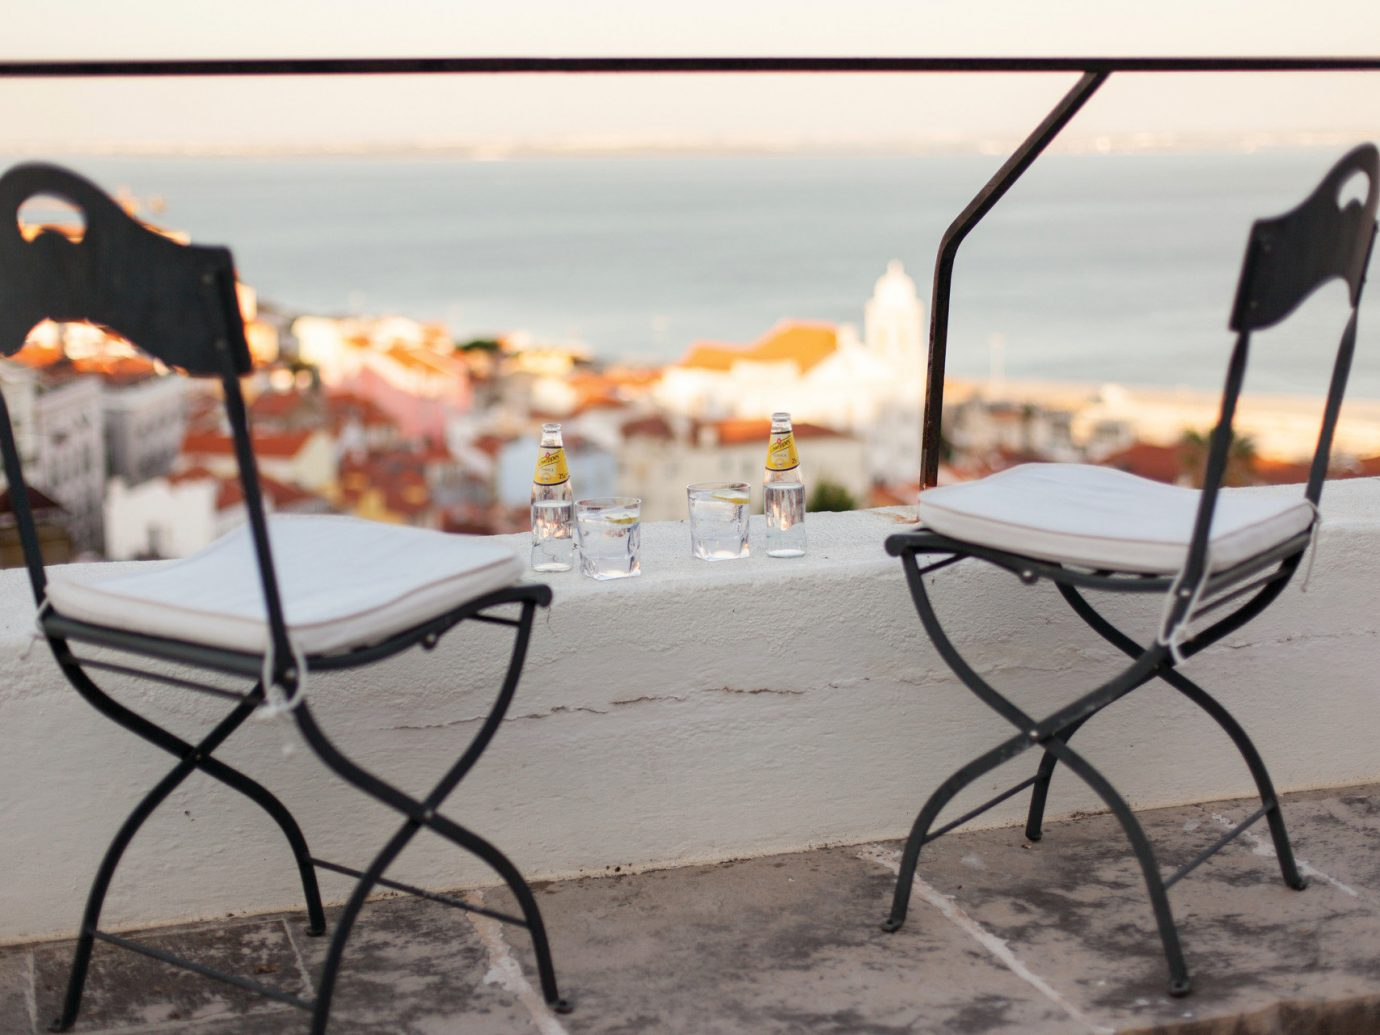 Balcony Buildings City city views Drink drinks lounge chairs Ocean ocean view Patio private serene Terrace Trip Ideas view sky color outdoor furniture table wood set